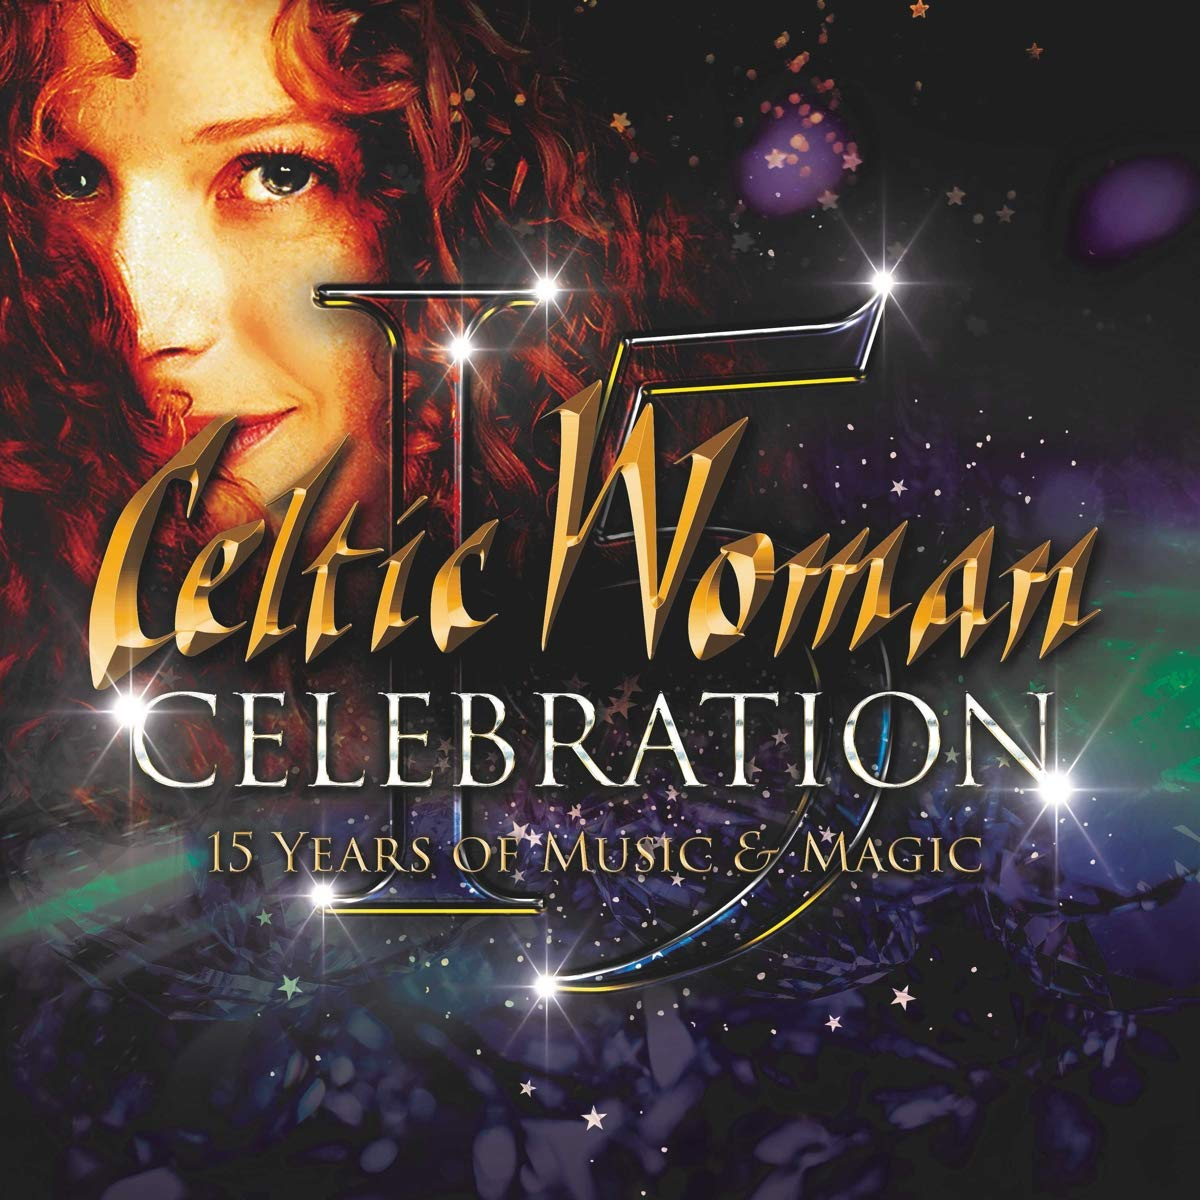 CD Shop - CELTIC WOMAN CELEBRATION